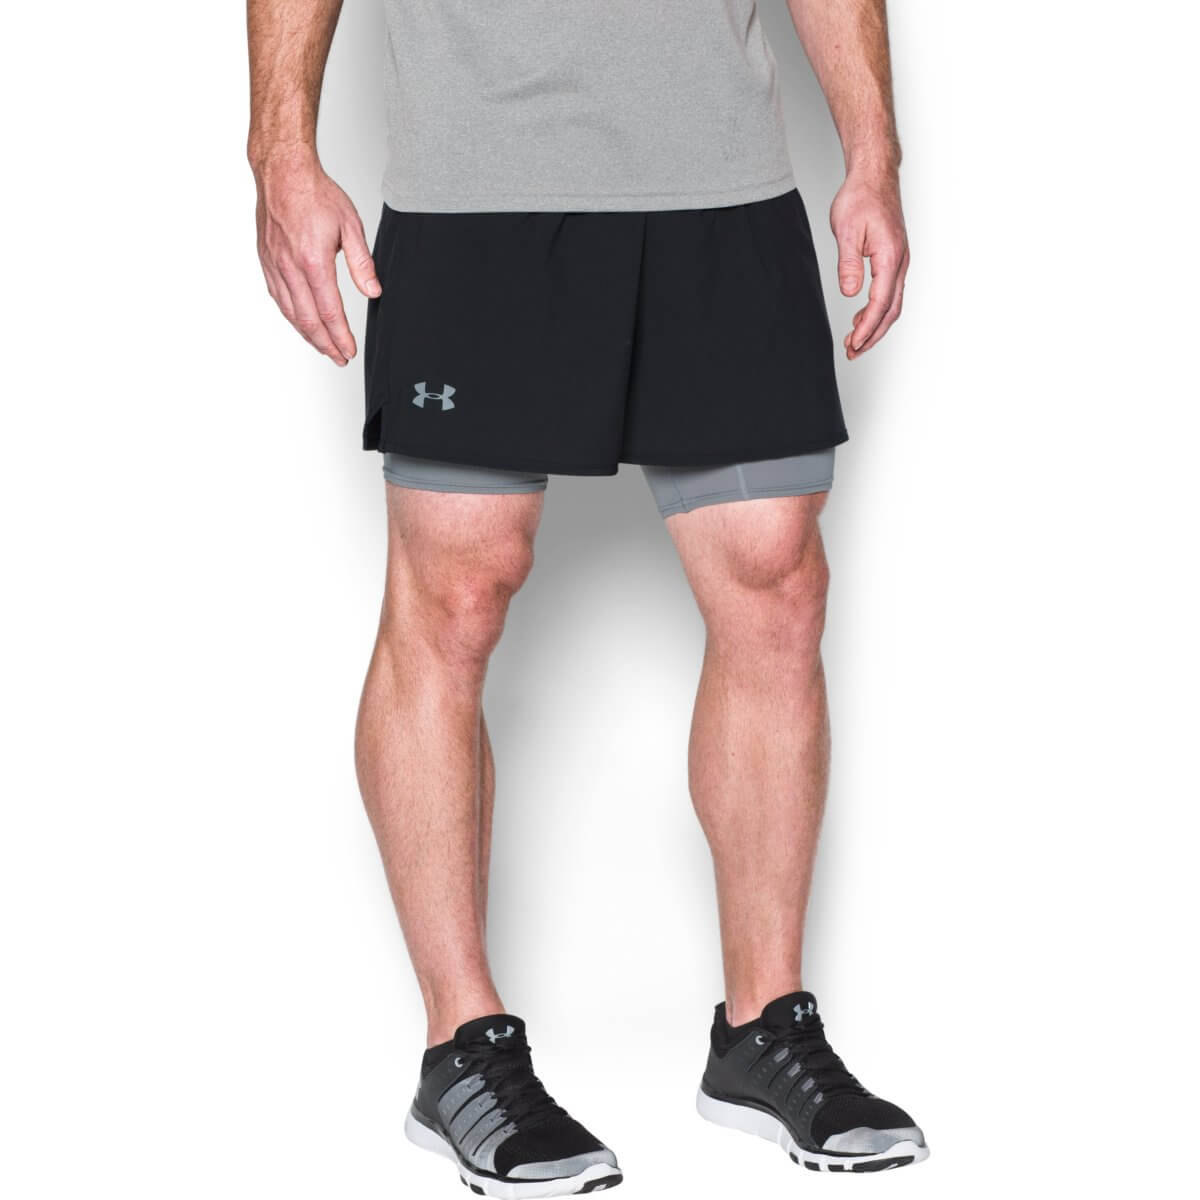 Šortky Qualifier 2-in-1 Short Black - Under Armour